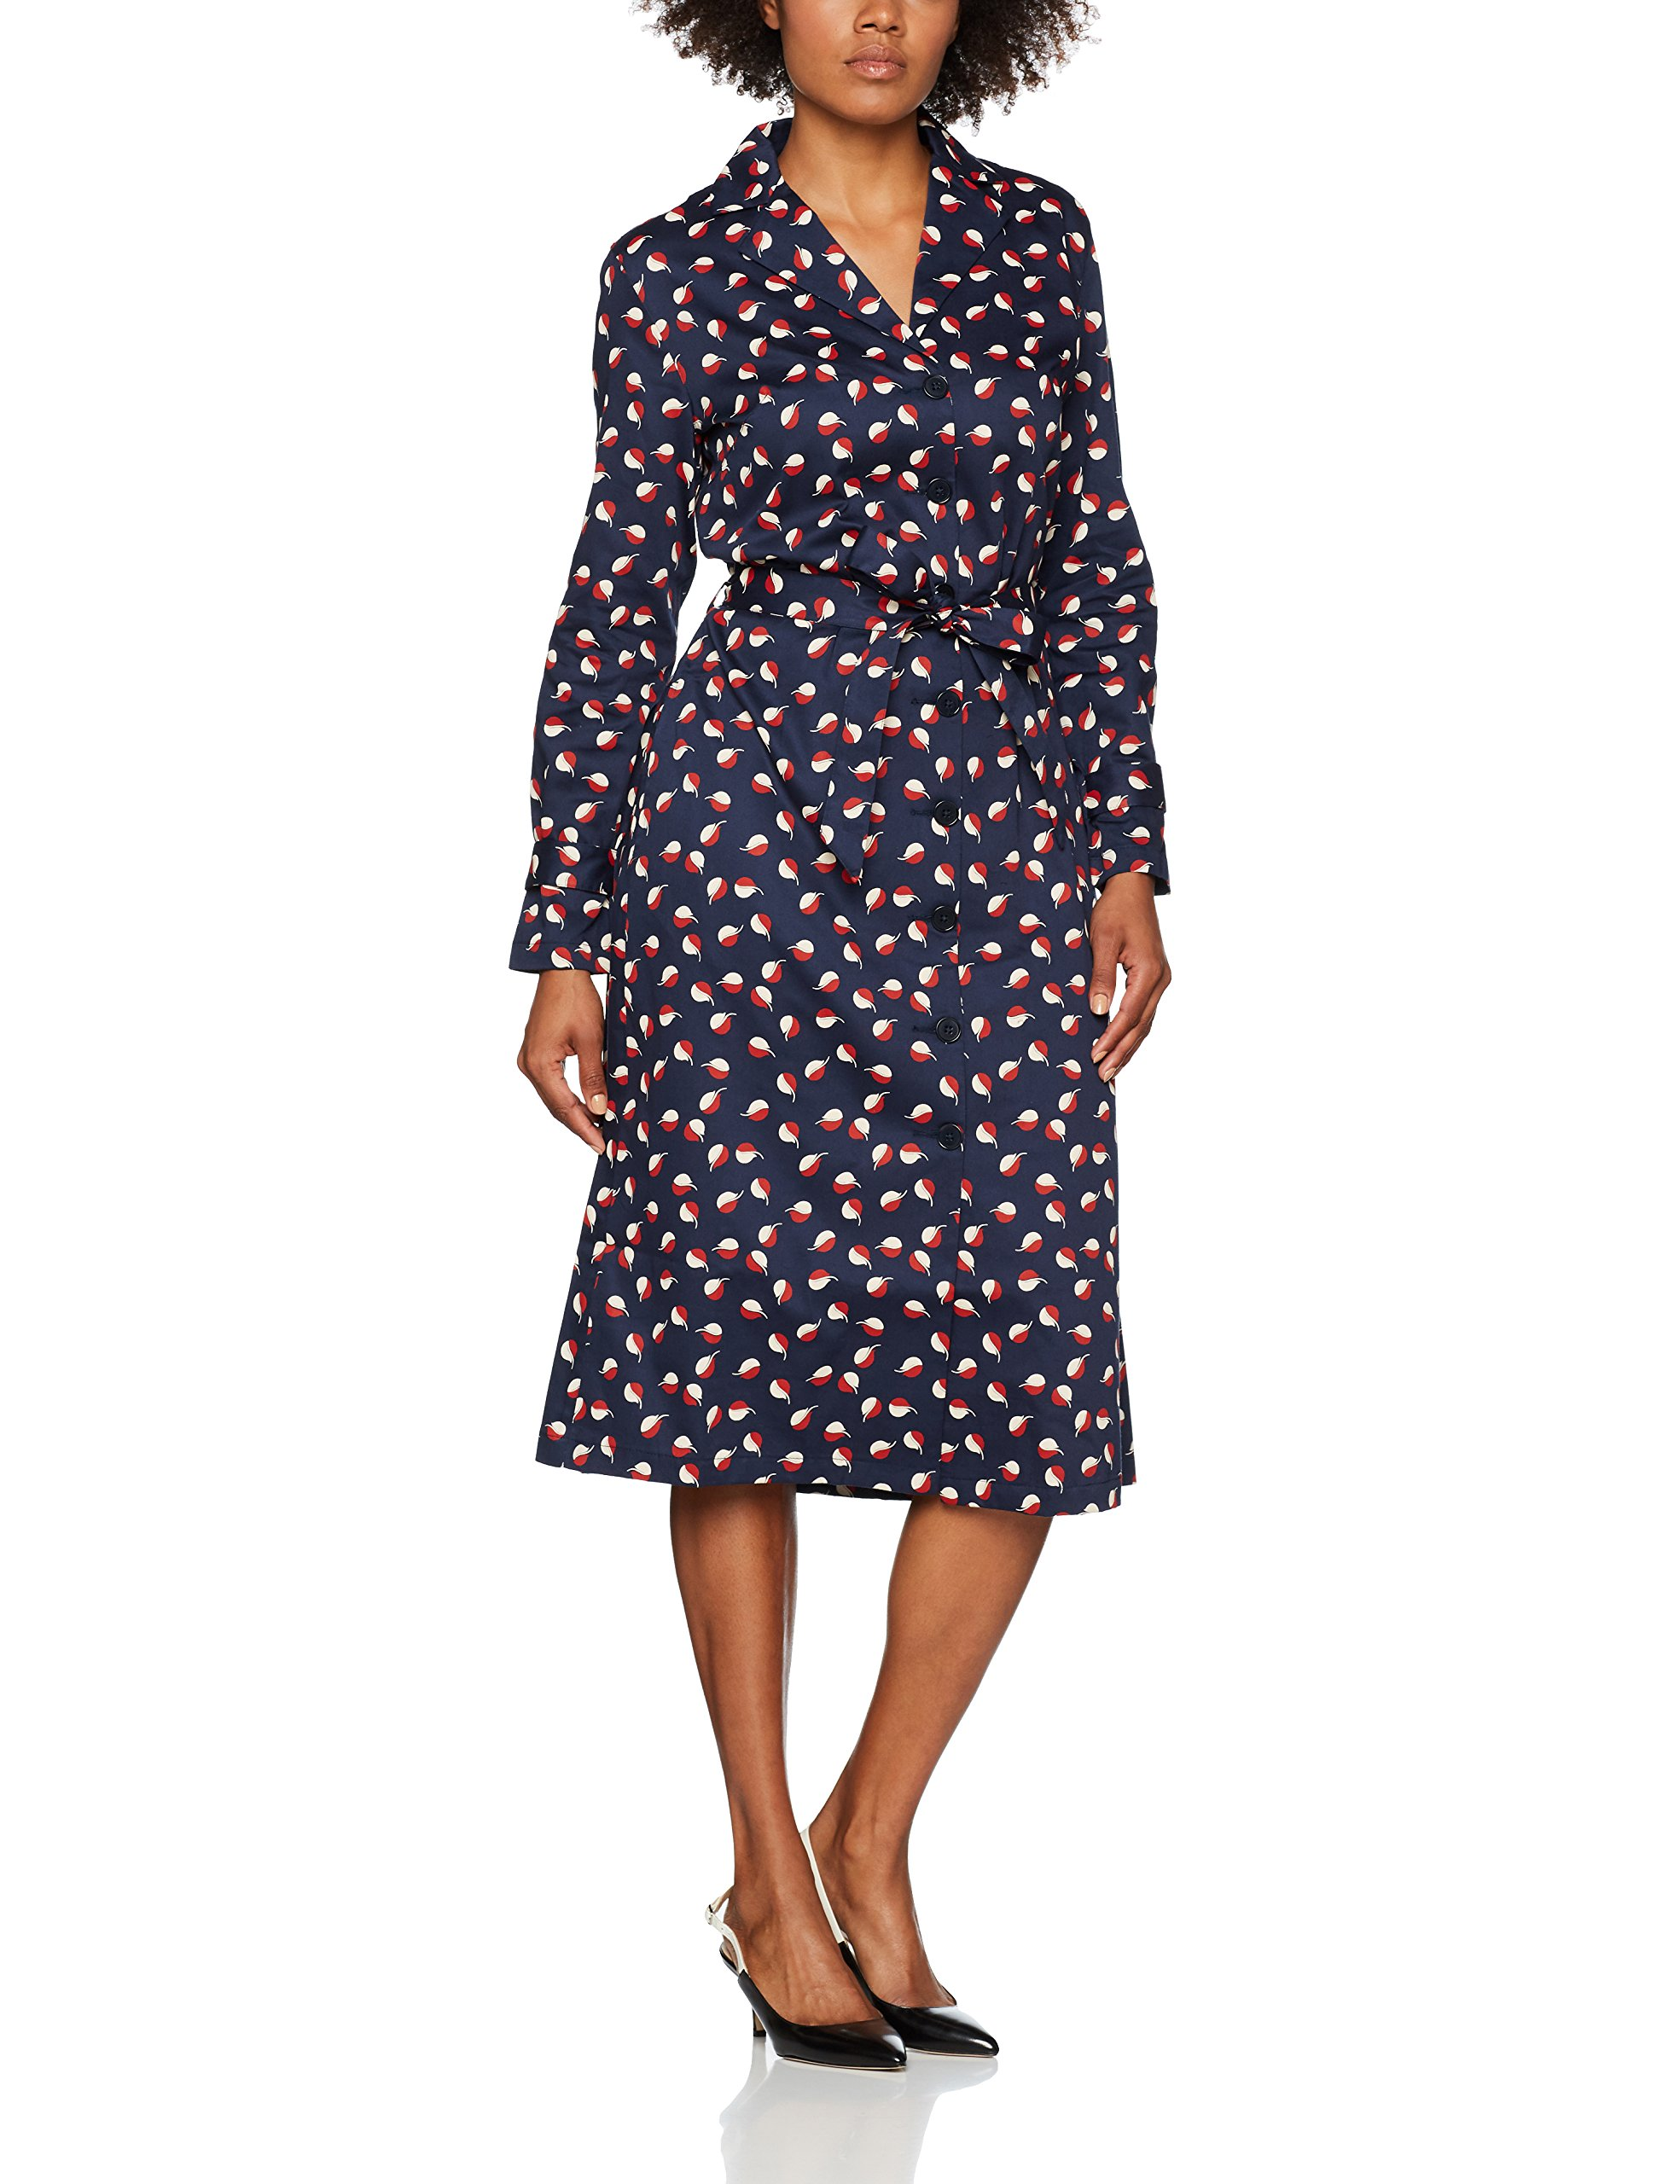 People Seed 00144 Tree V ManteauBleunavy Femme amp;a 2bWH9YeDEI